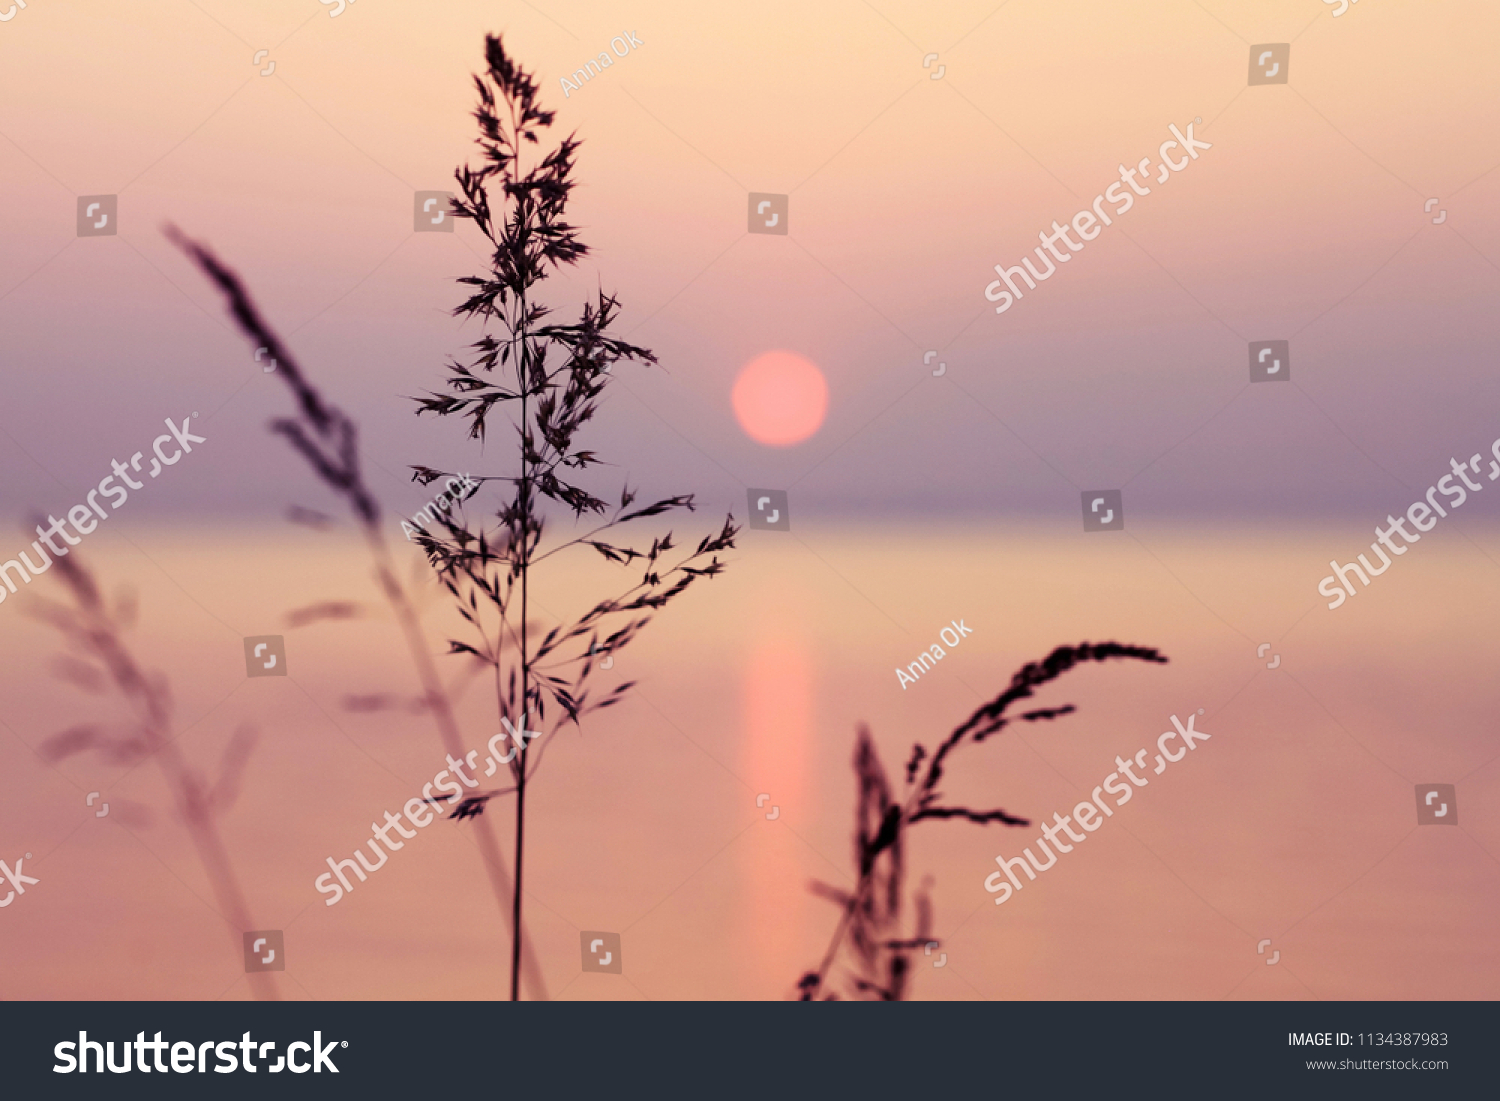 Little grass stem close-up with sunset over calm sea, sun going down over horizon. Pink & purple pastel watercolor soft tones. Beautiful nature background.  #1134387983